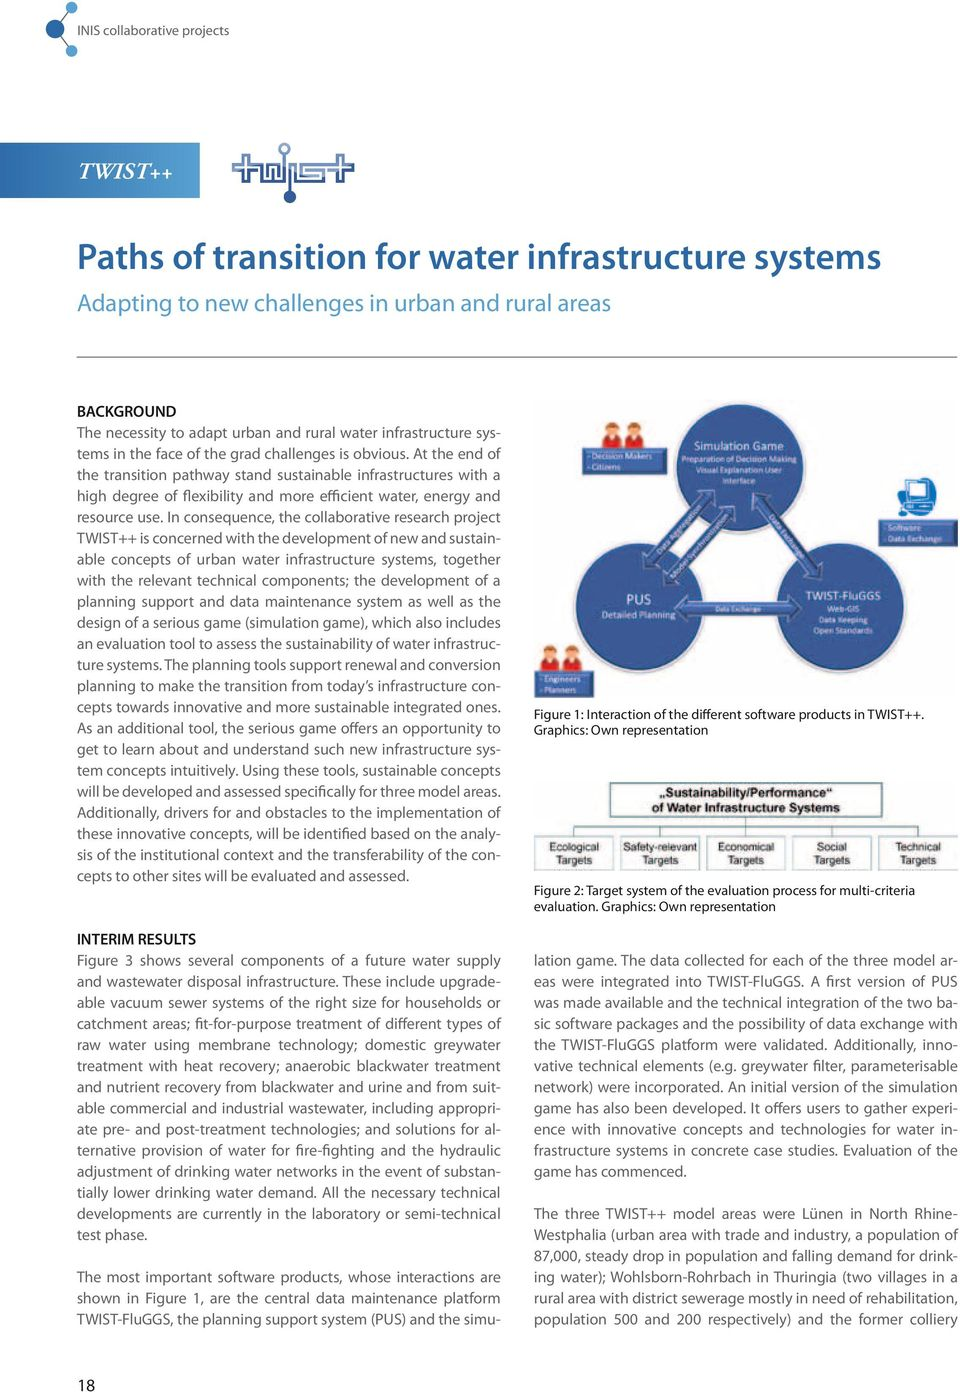 At the end of the transition pathway stand sustainable infrastructures with a high degree of flexibility and more efficient water, energy and resource use.